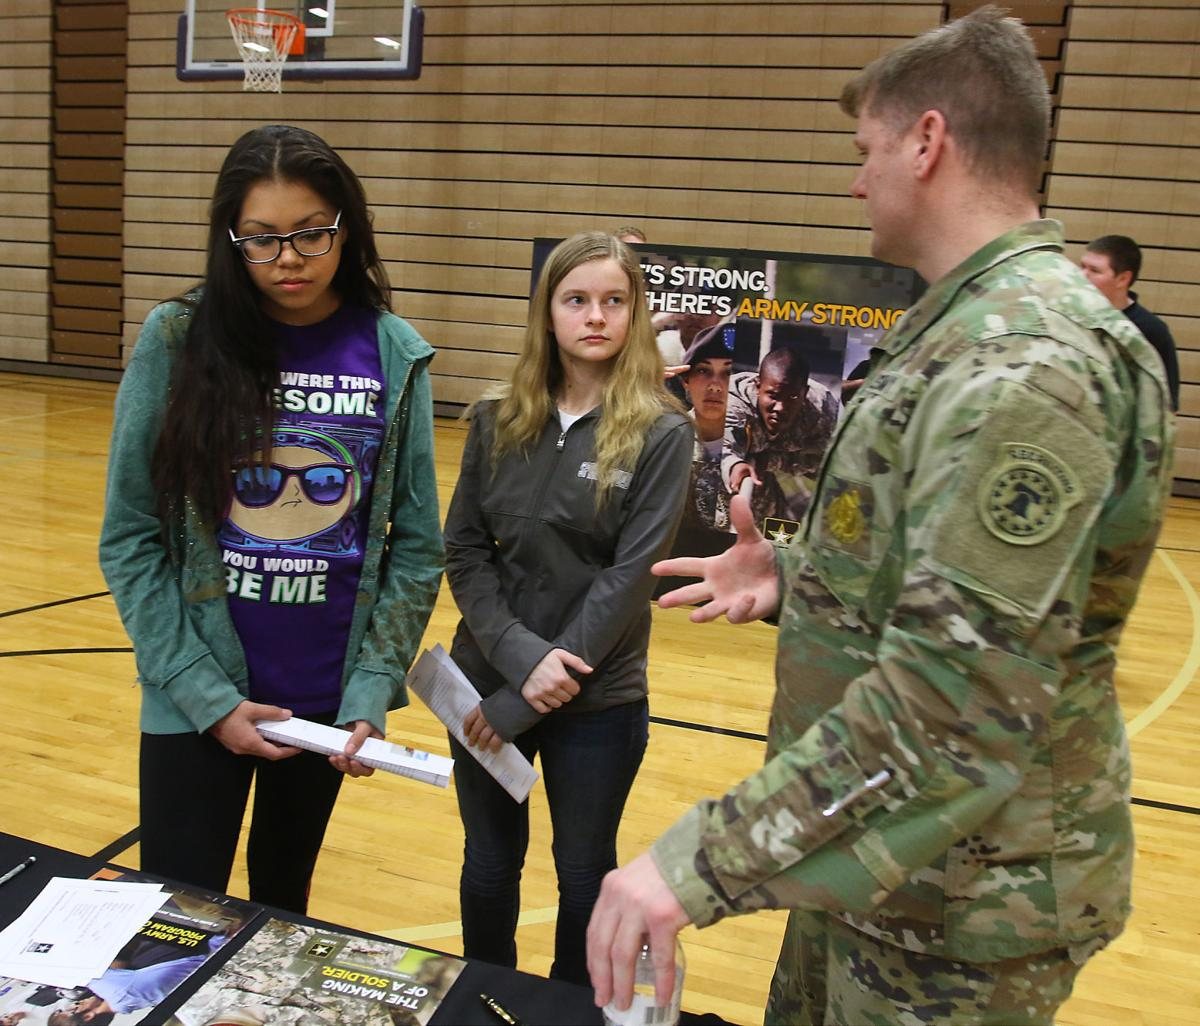 Army recruiter talks with students